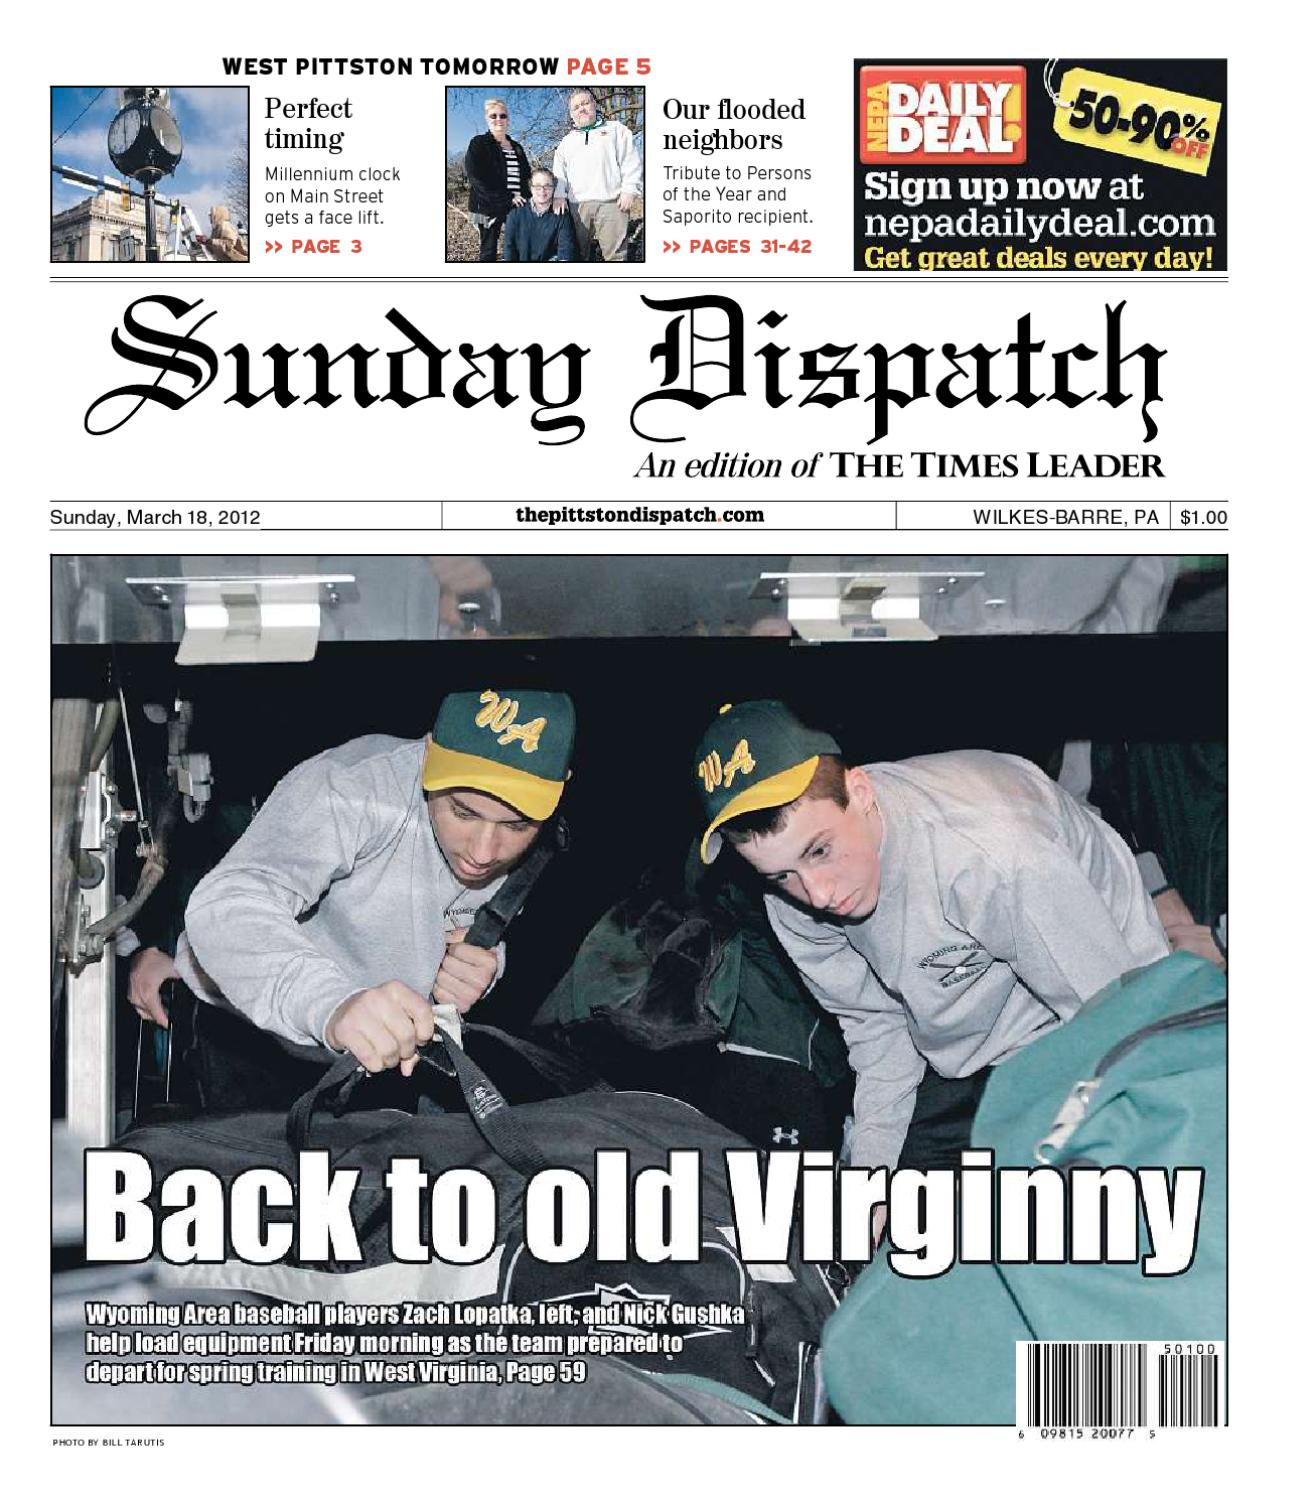 online retailer 6aee4 8661c The Pittston Dispatch 03-18-2012 by The Wilkes-Barre Publishing Company -  issuu